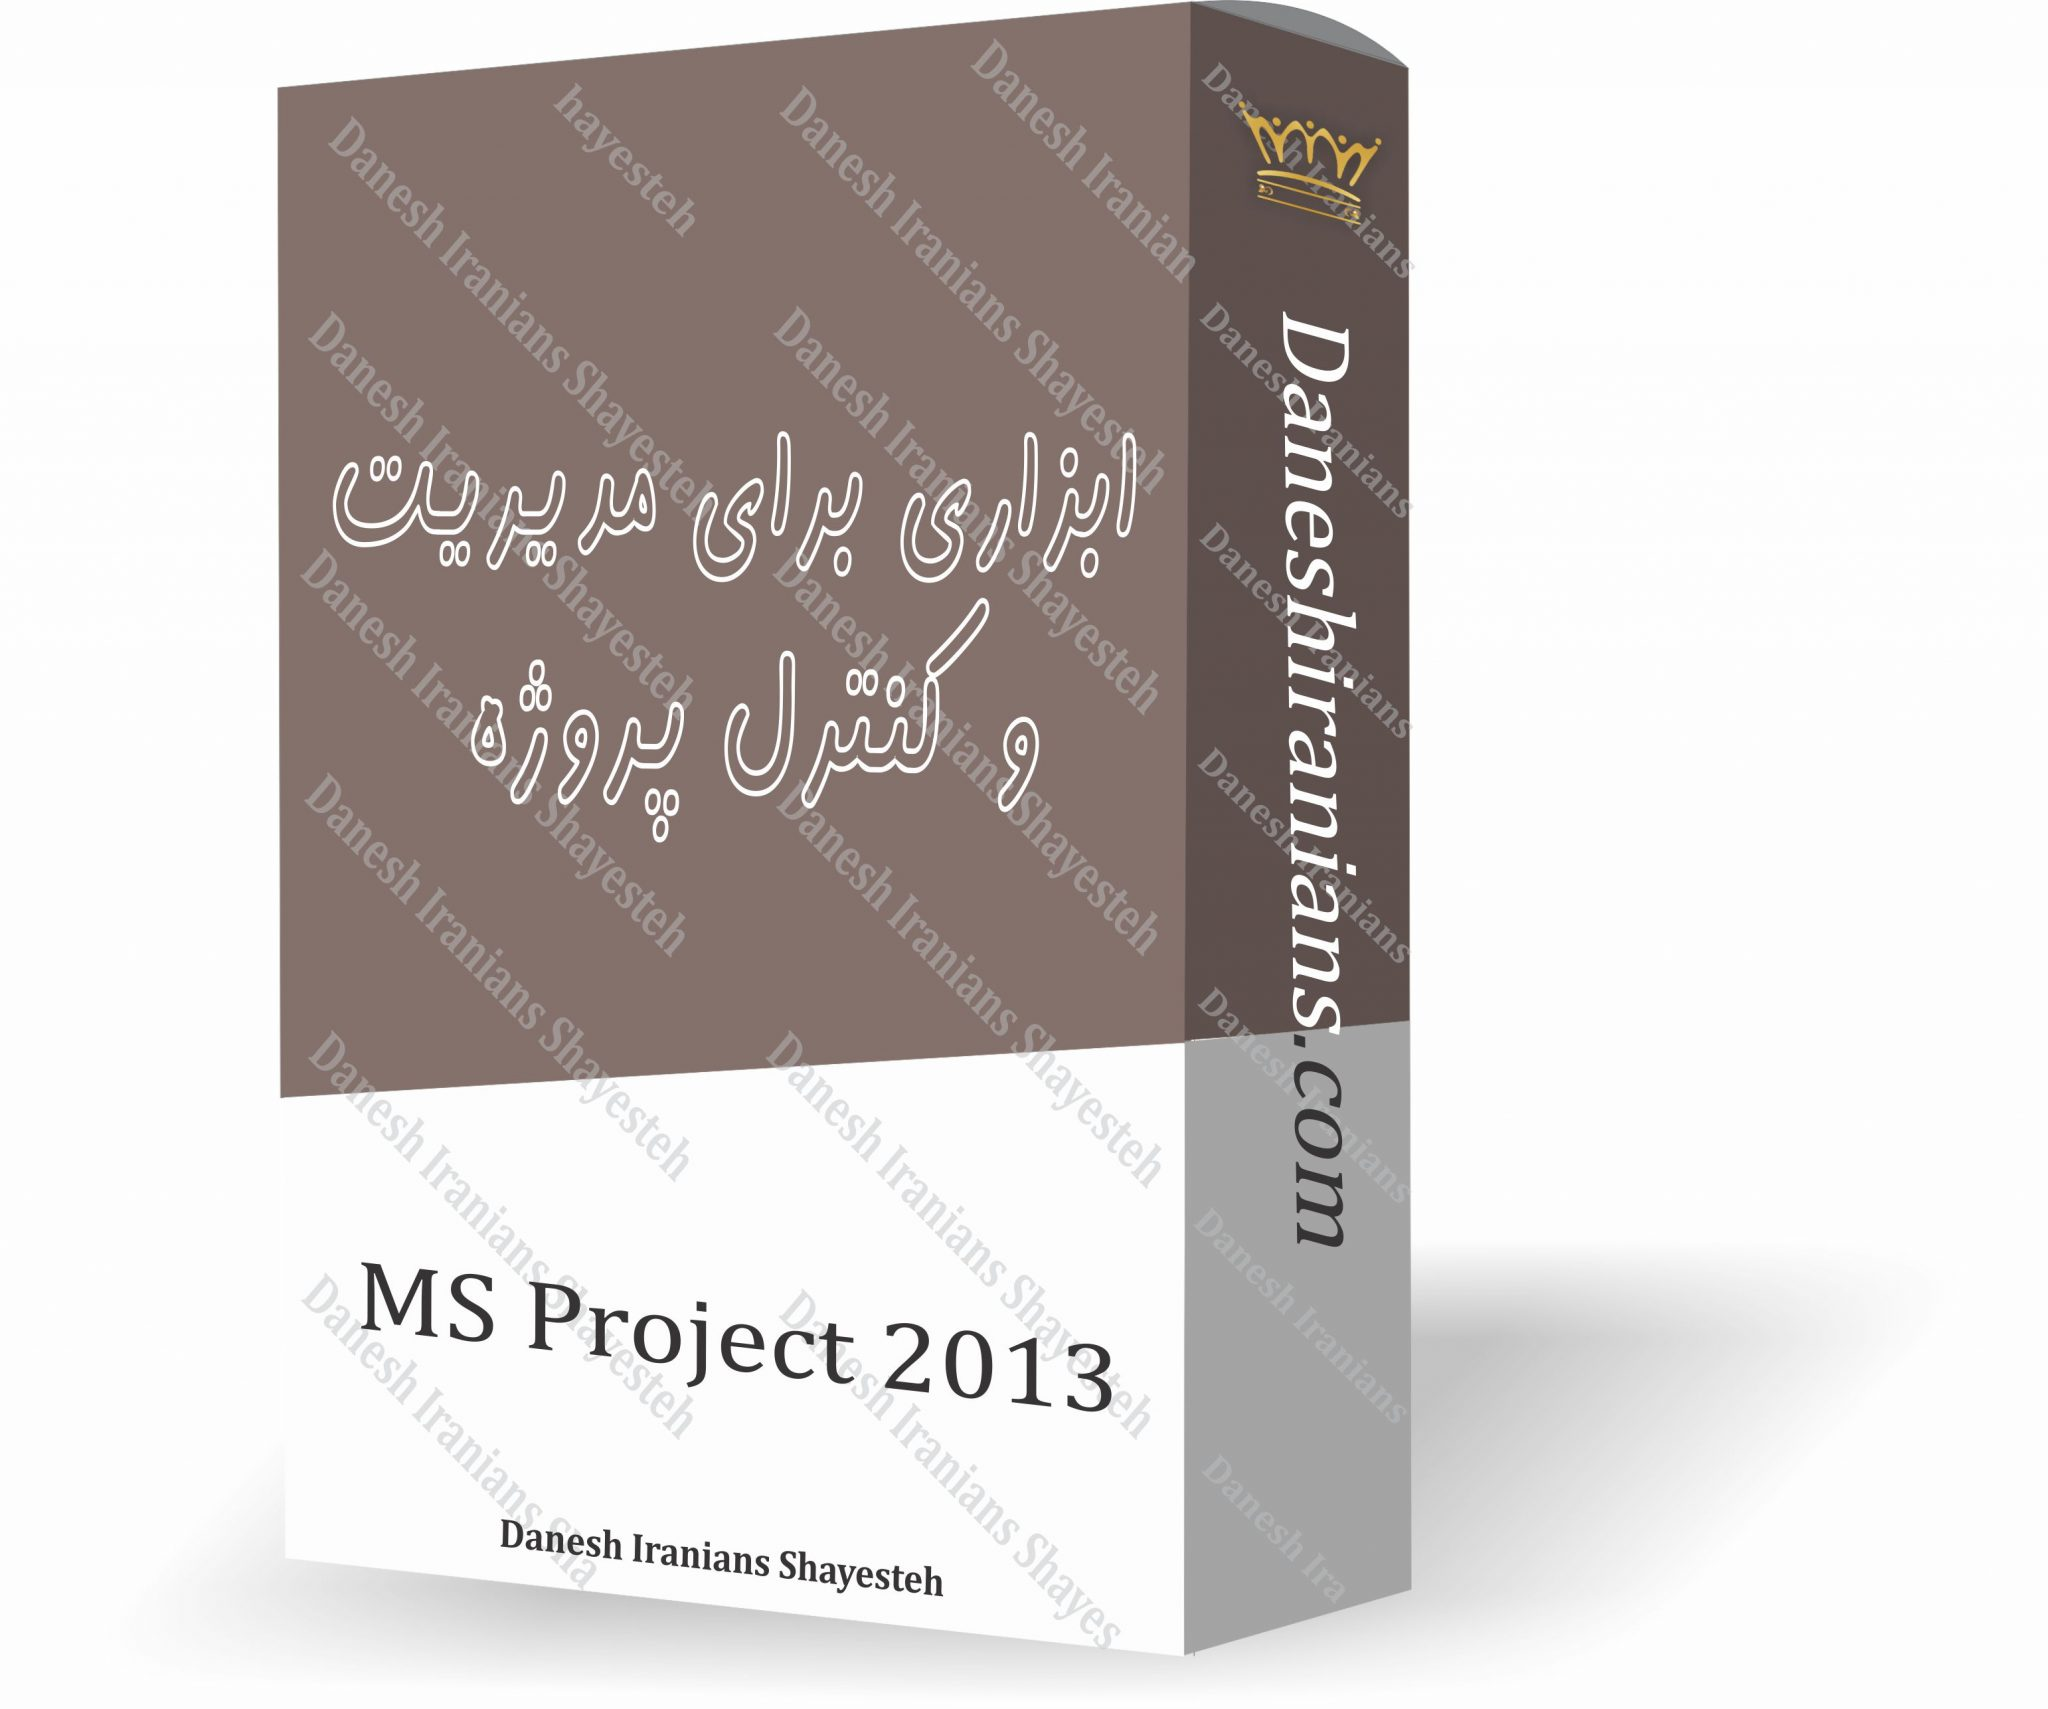 MS Project 2013